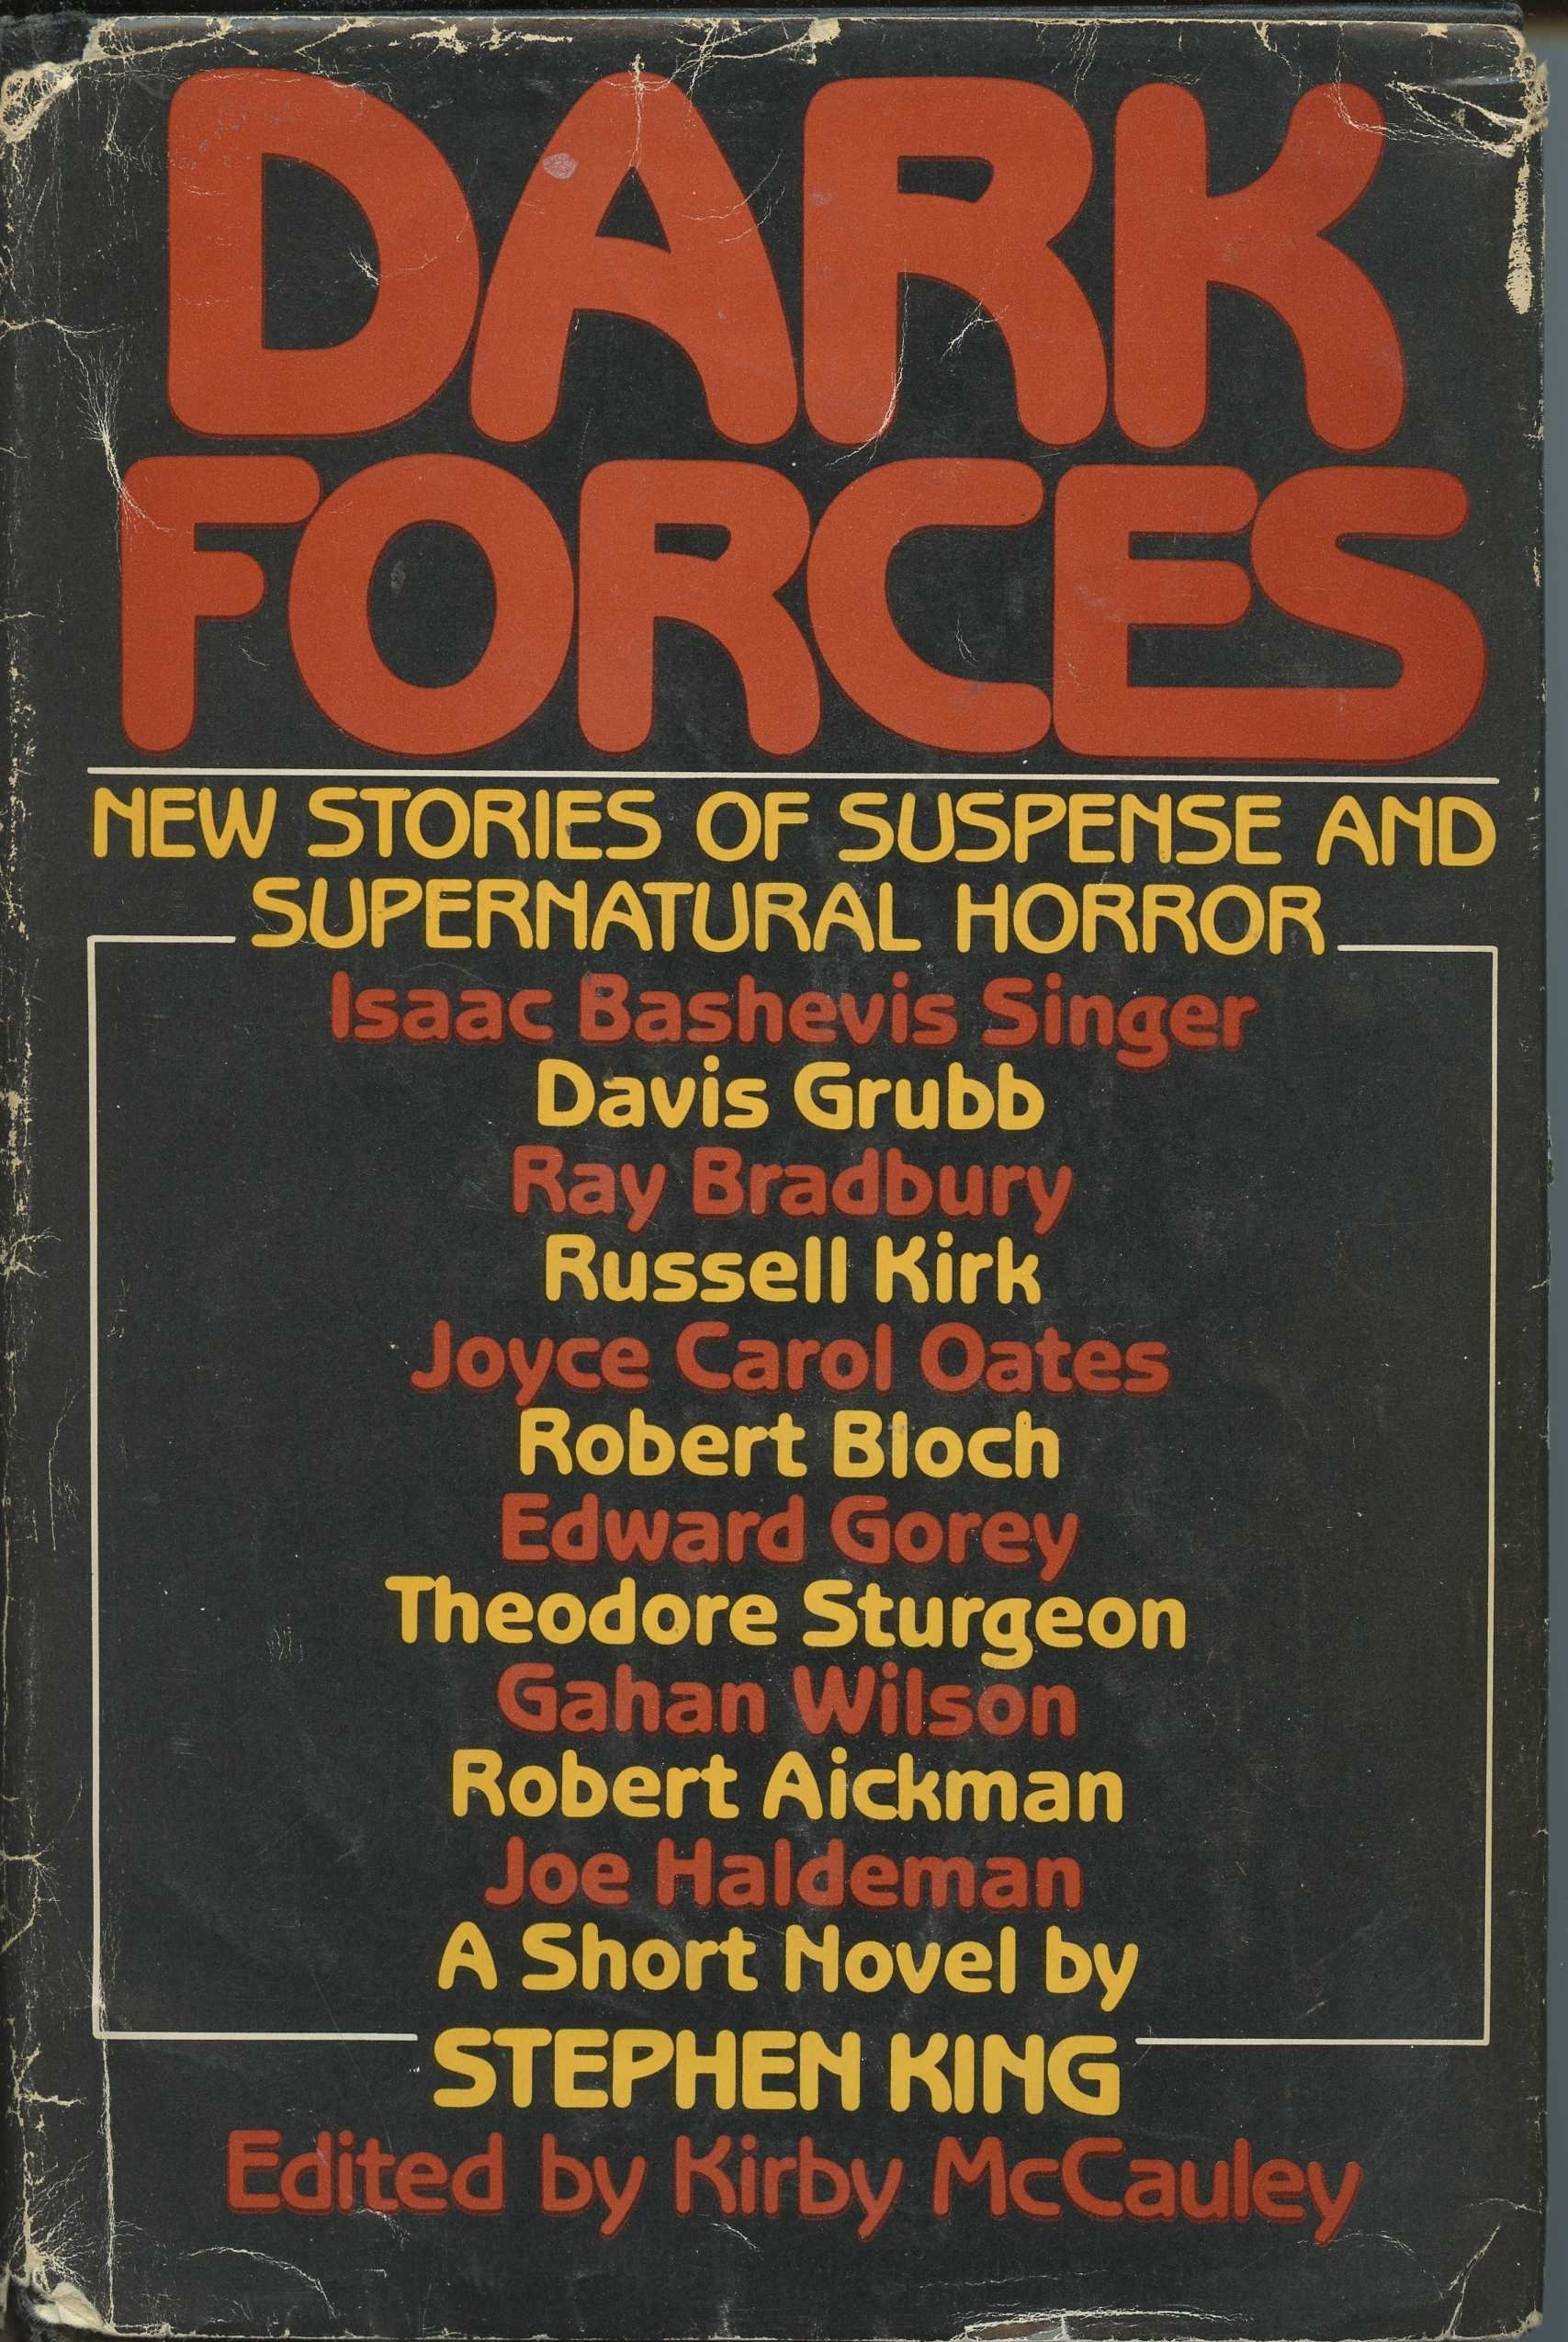 Dark forces new stories of suspense and supernatural horror dark forces new stories of suspense and supernatural horror stephen king kirby mccauley 9780670256532 amazon books fandeluxe Choice Image